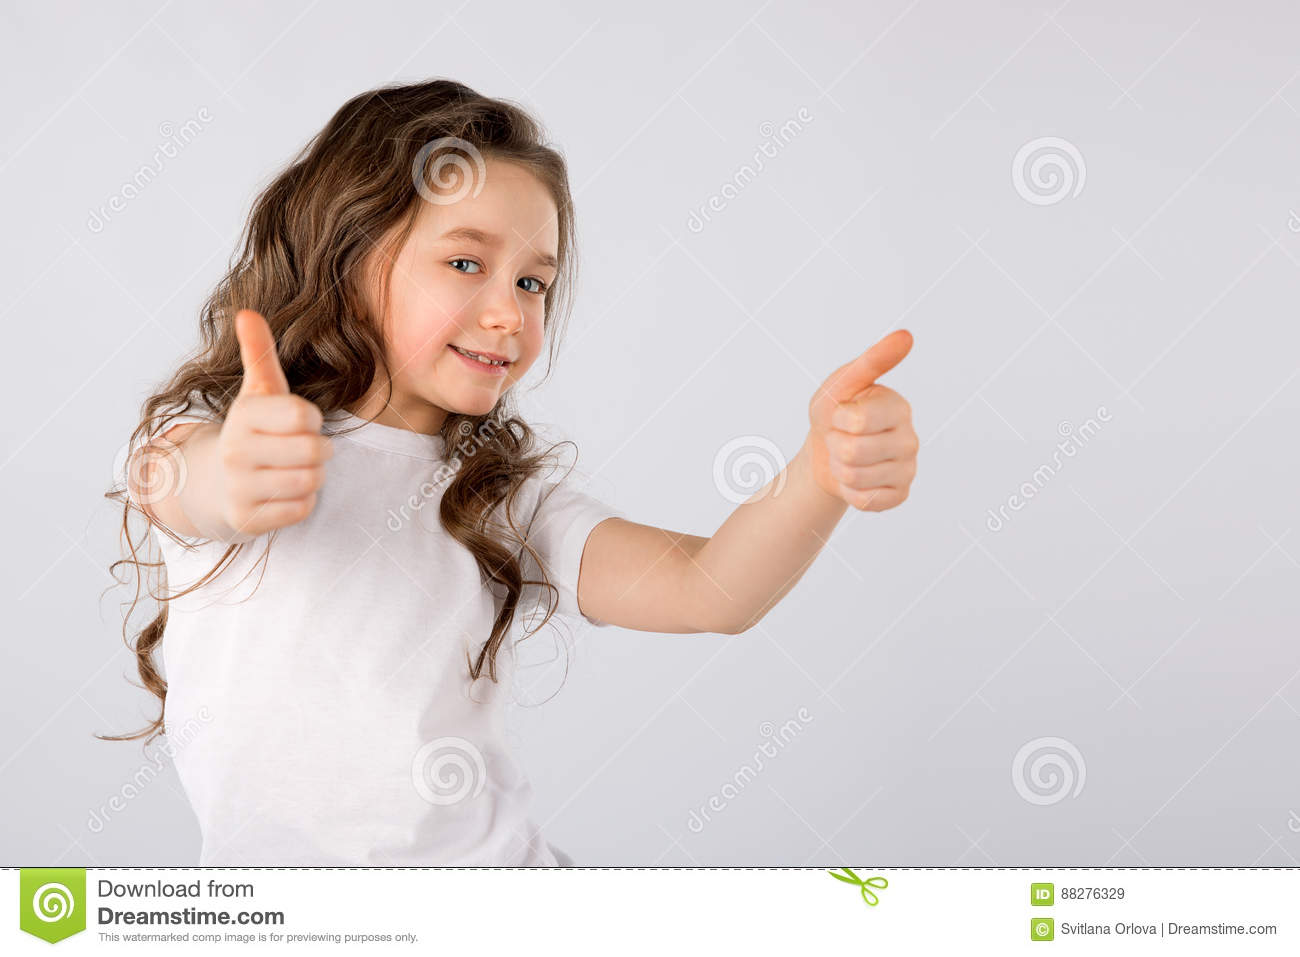 Little girl showing thumbs up gesture isolated on white background.